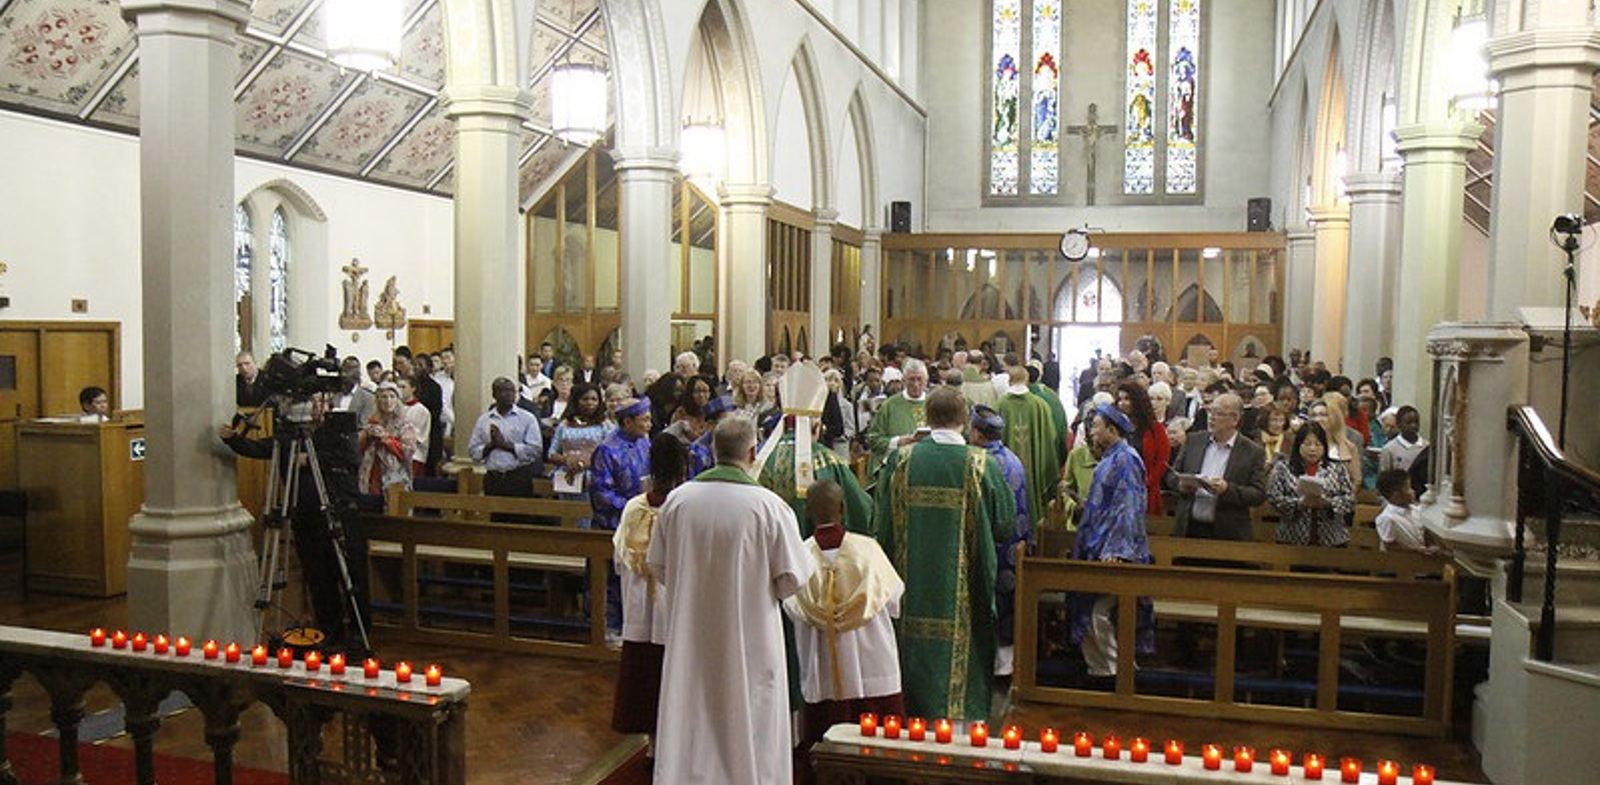 125th Anniversary Year for Handsworth Church